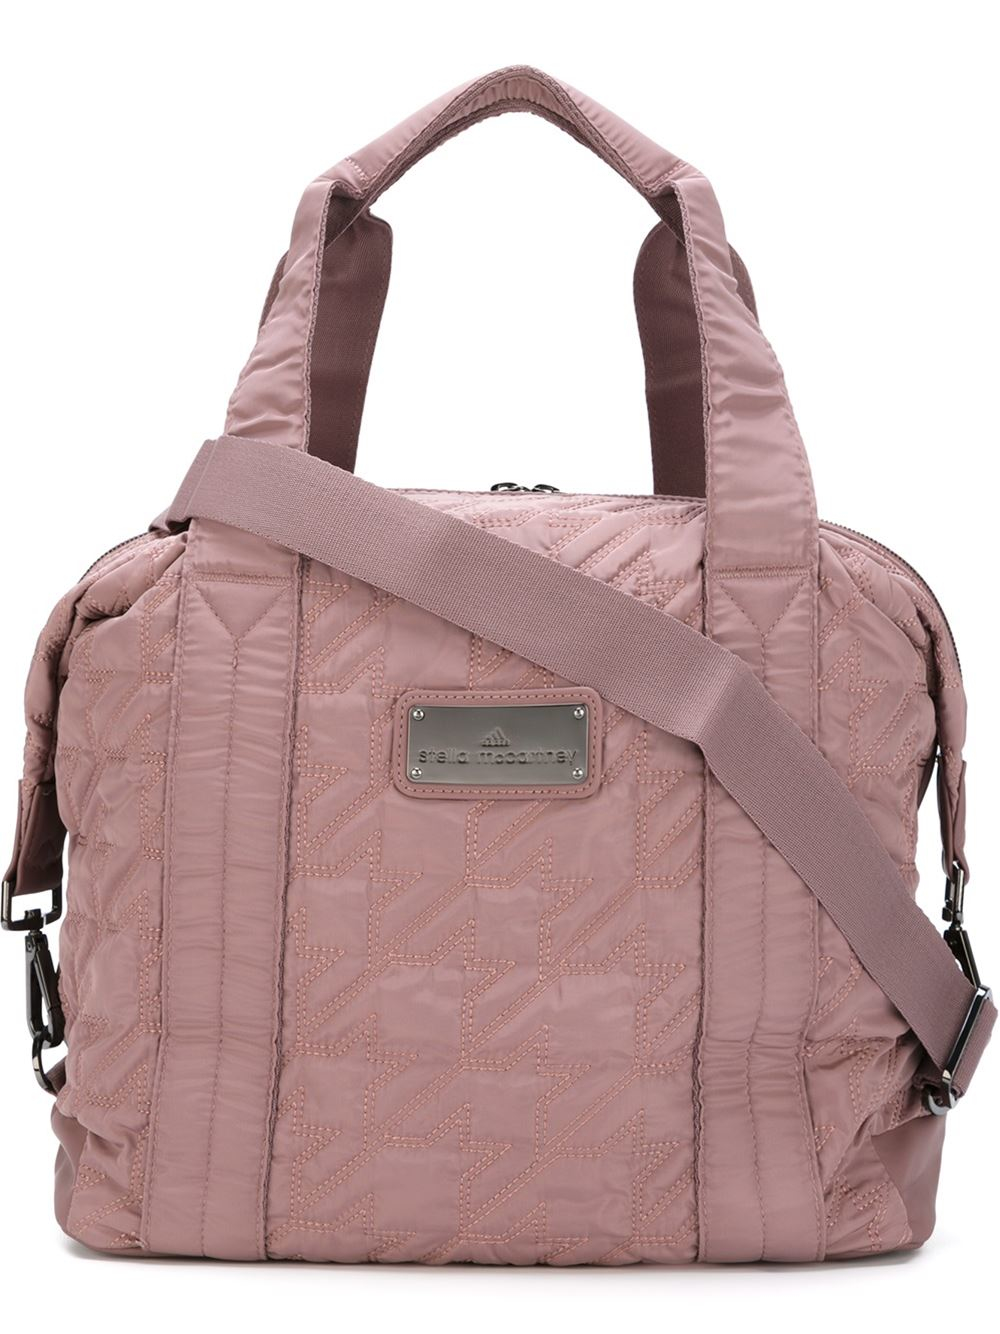 39e3c8c15520 Lyst - adidas By Stella McCartney Quilted Sports Bag in Pink